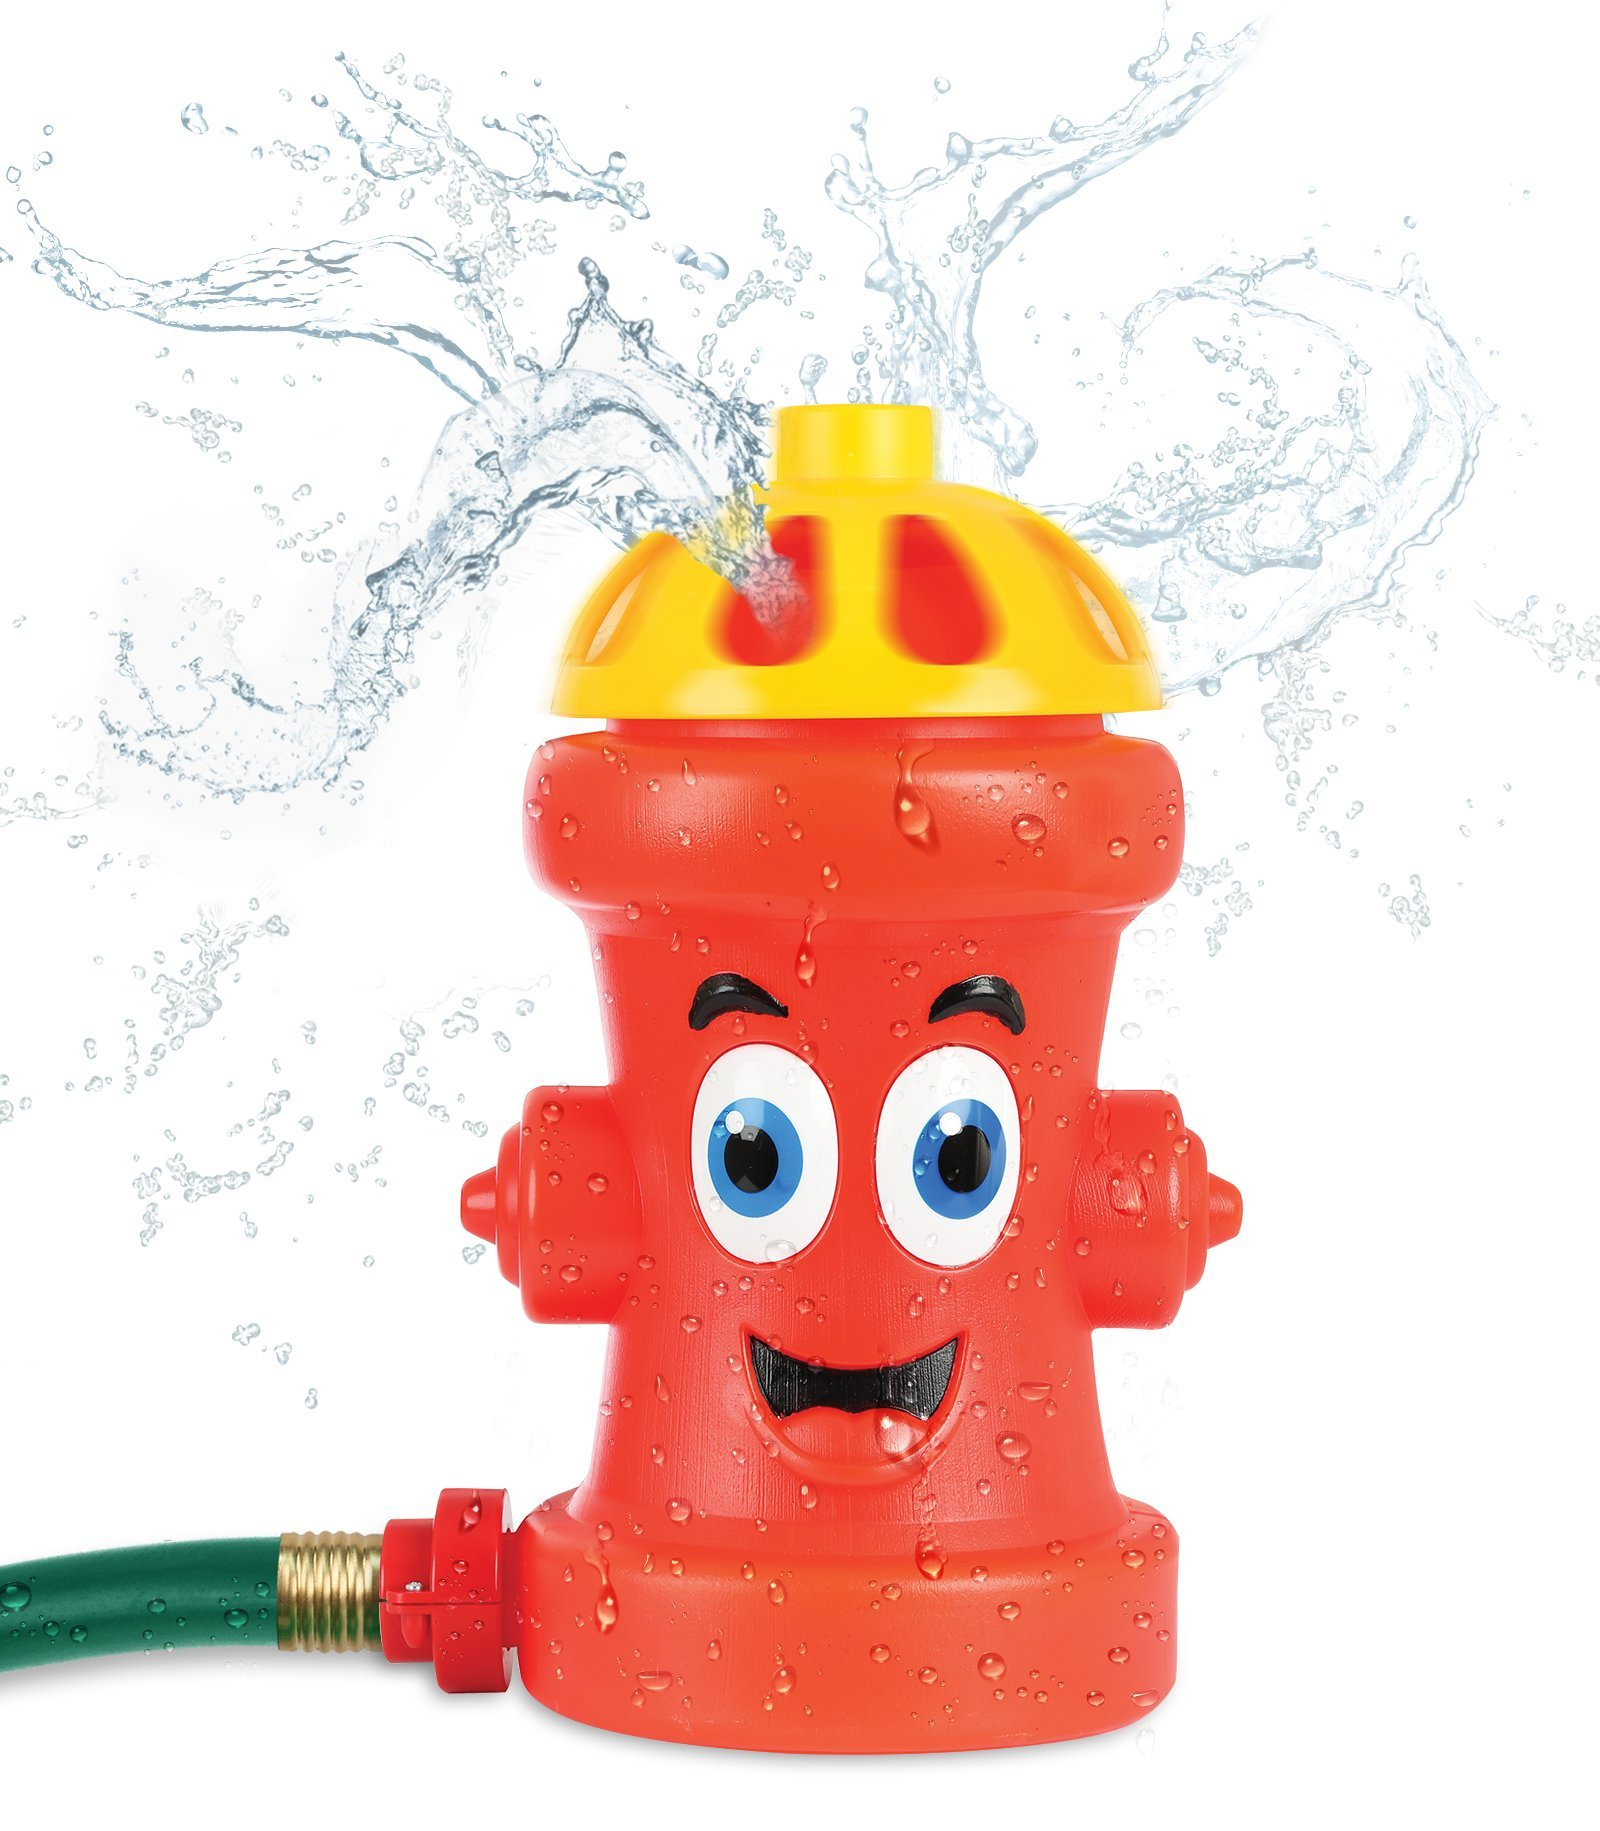 KLEEGER Fire Hydrant Sprinkler Toy For Kids: Family Summer Outdoor Game, Water Sprinkler Splash Toy